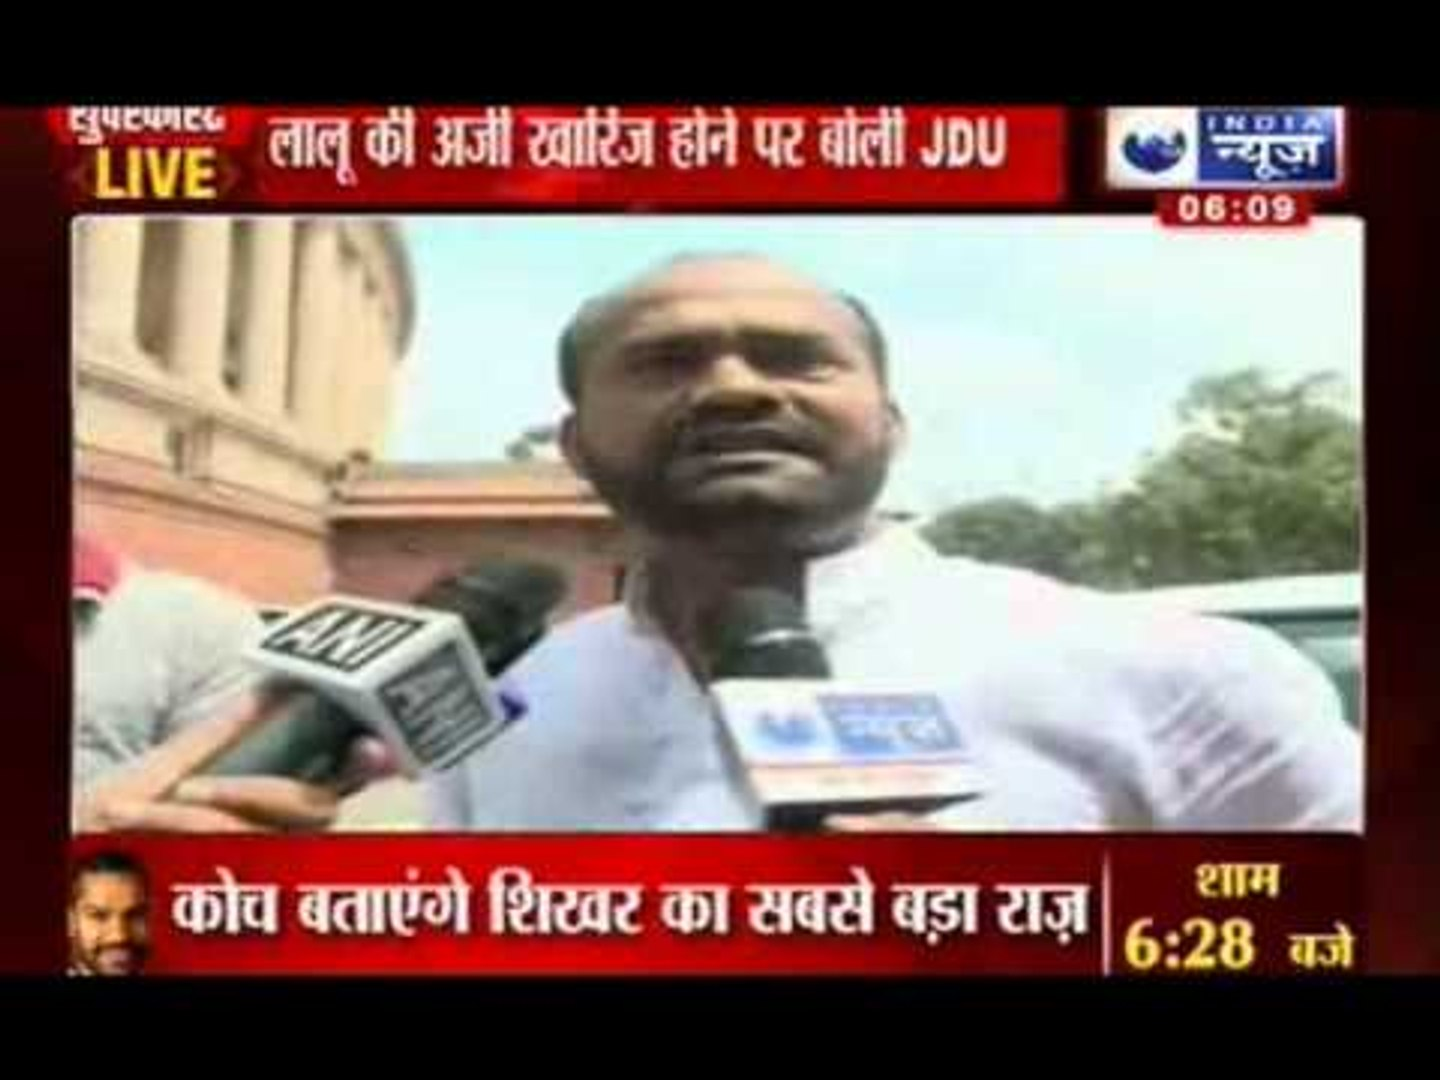 India News:  Super Fast 100 News